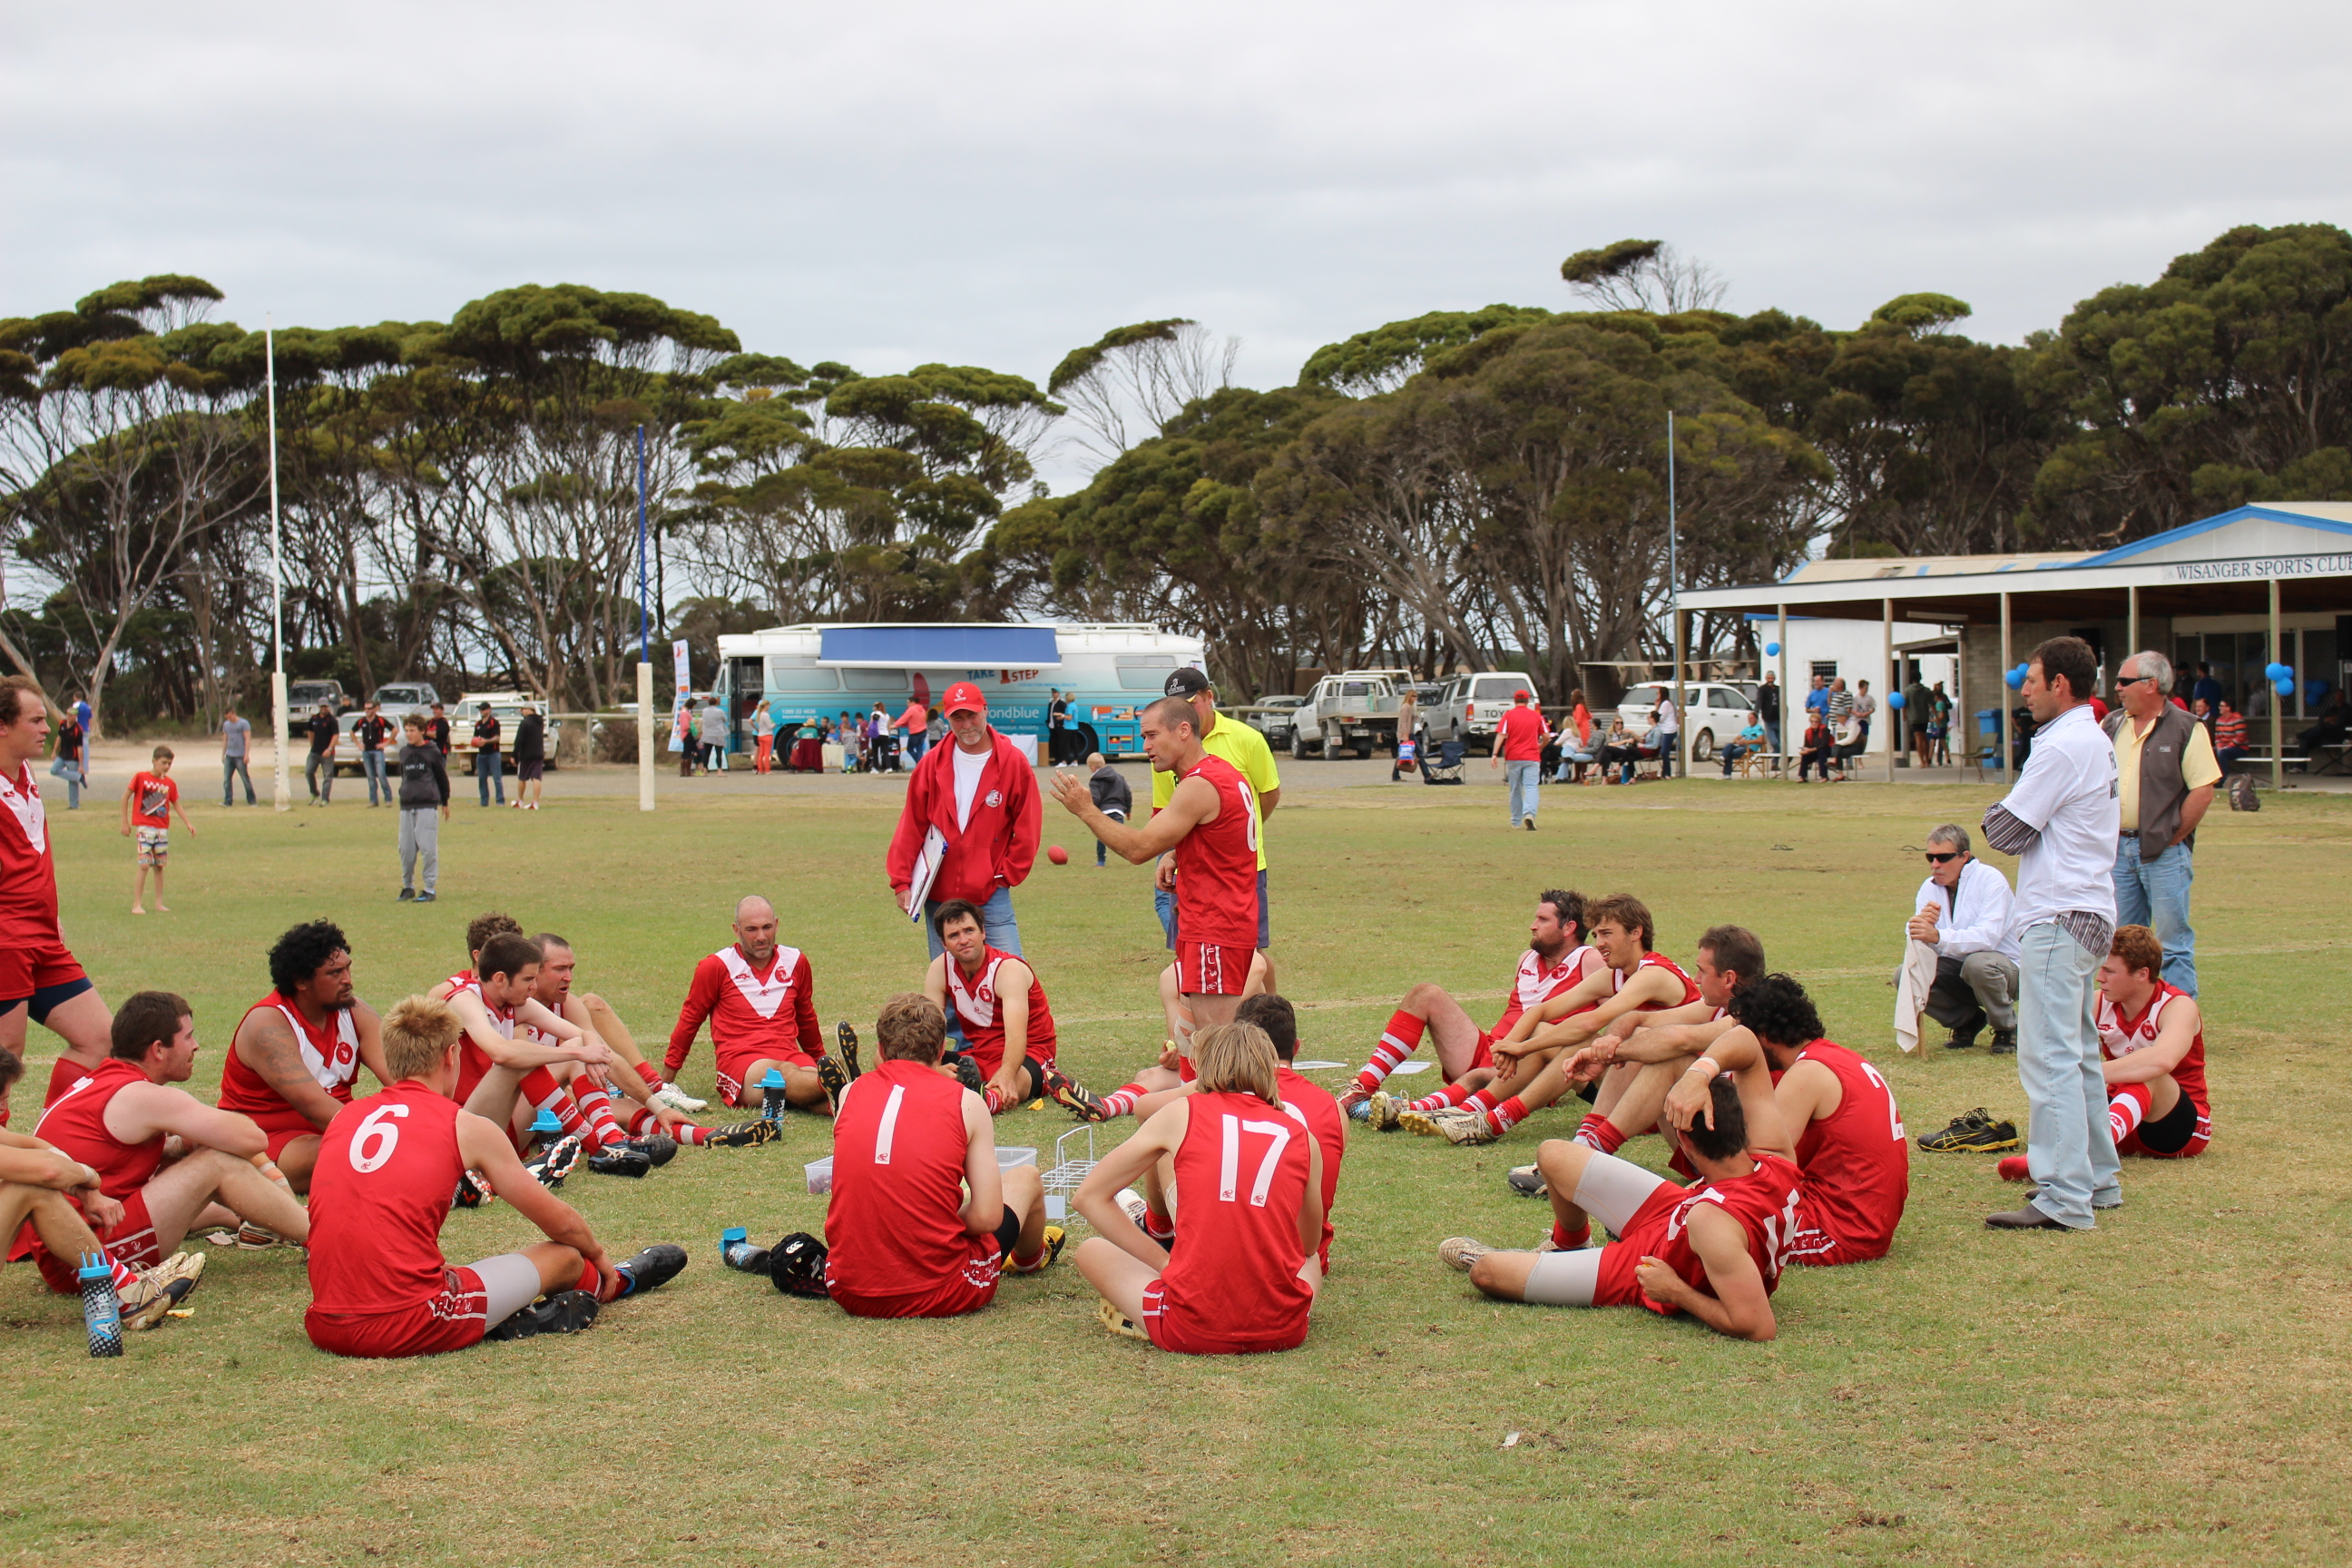 At the first round of the season for Kangaroo Island Football League: SA.